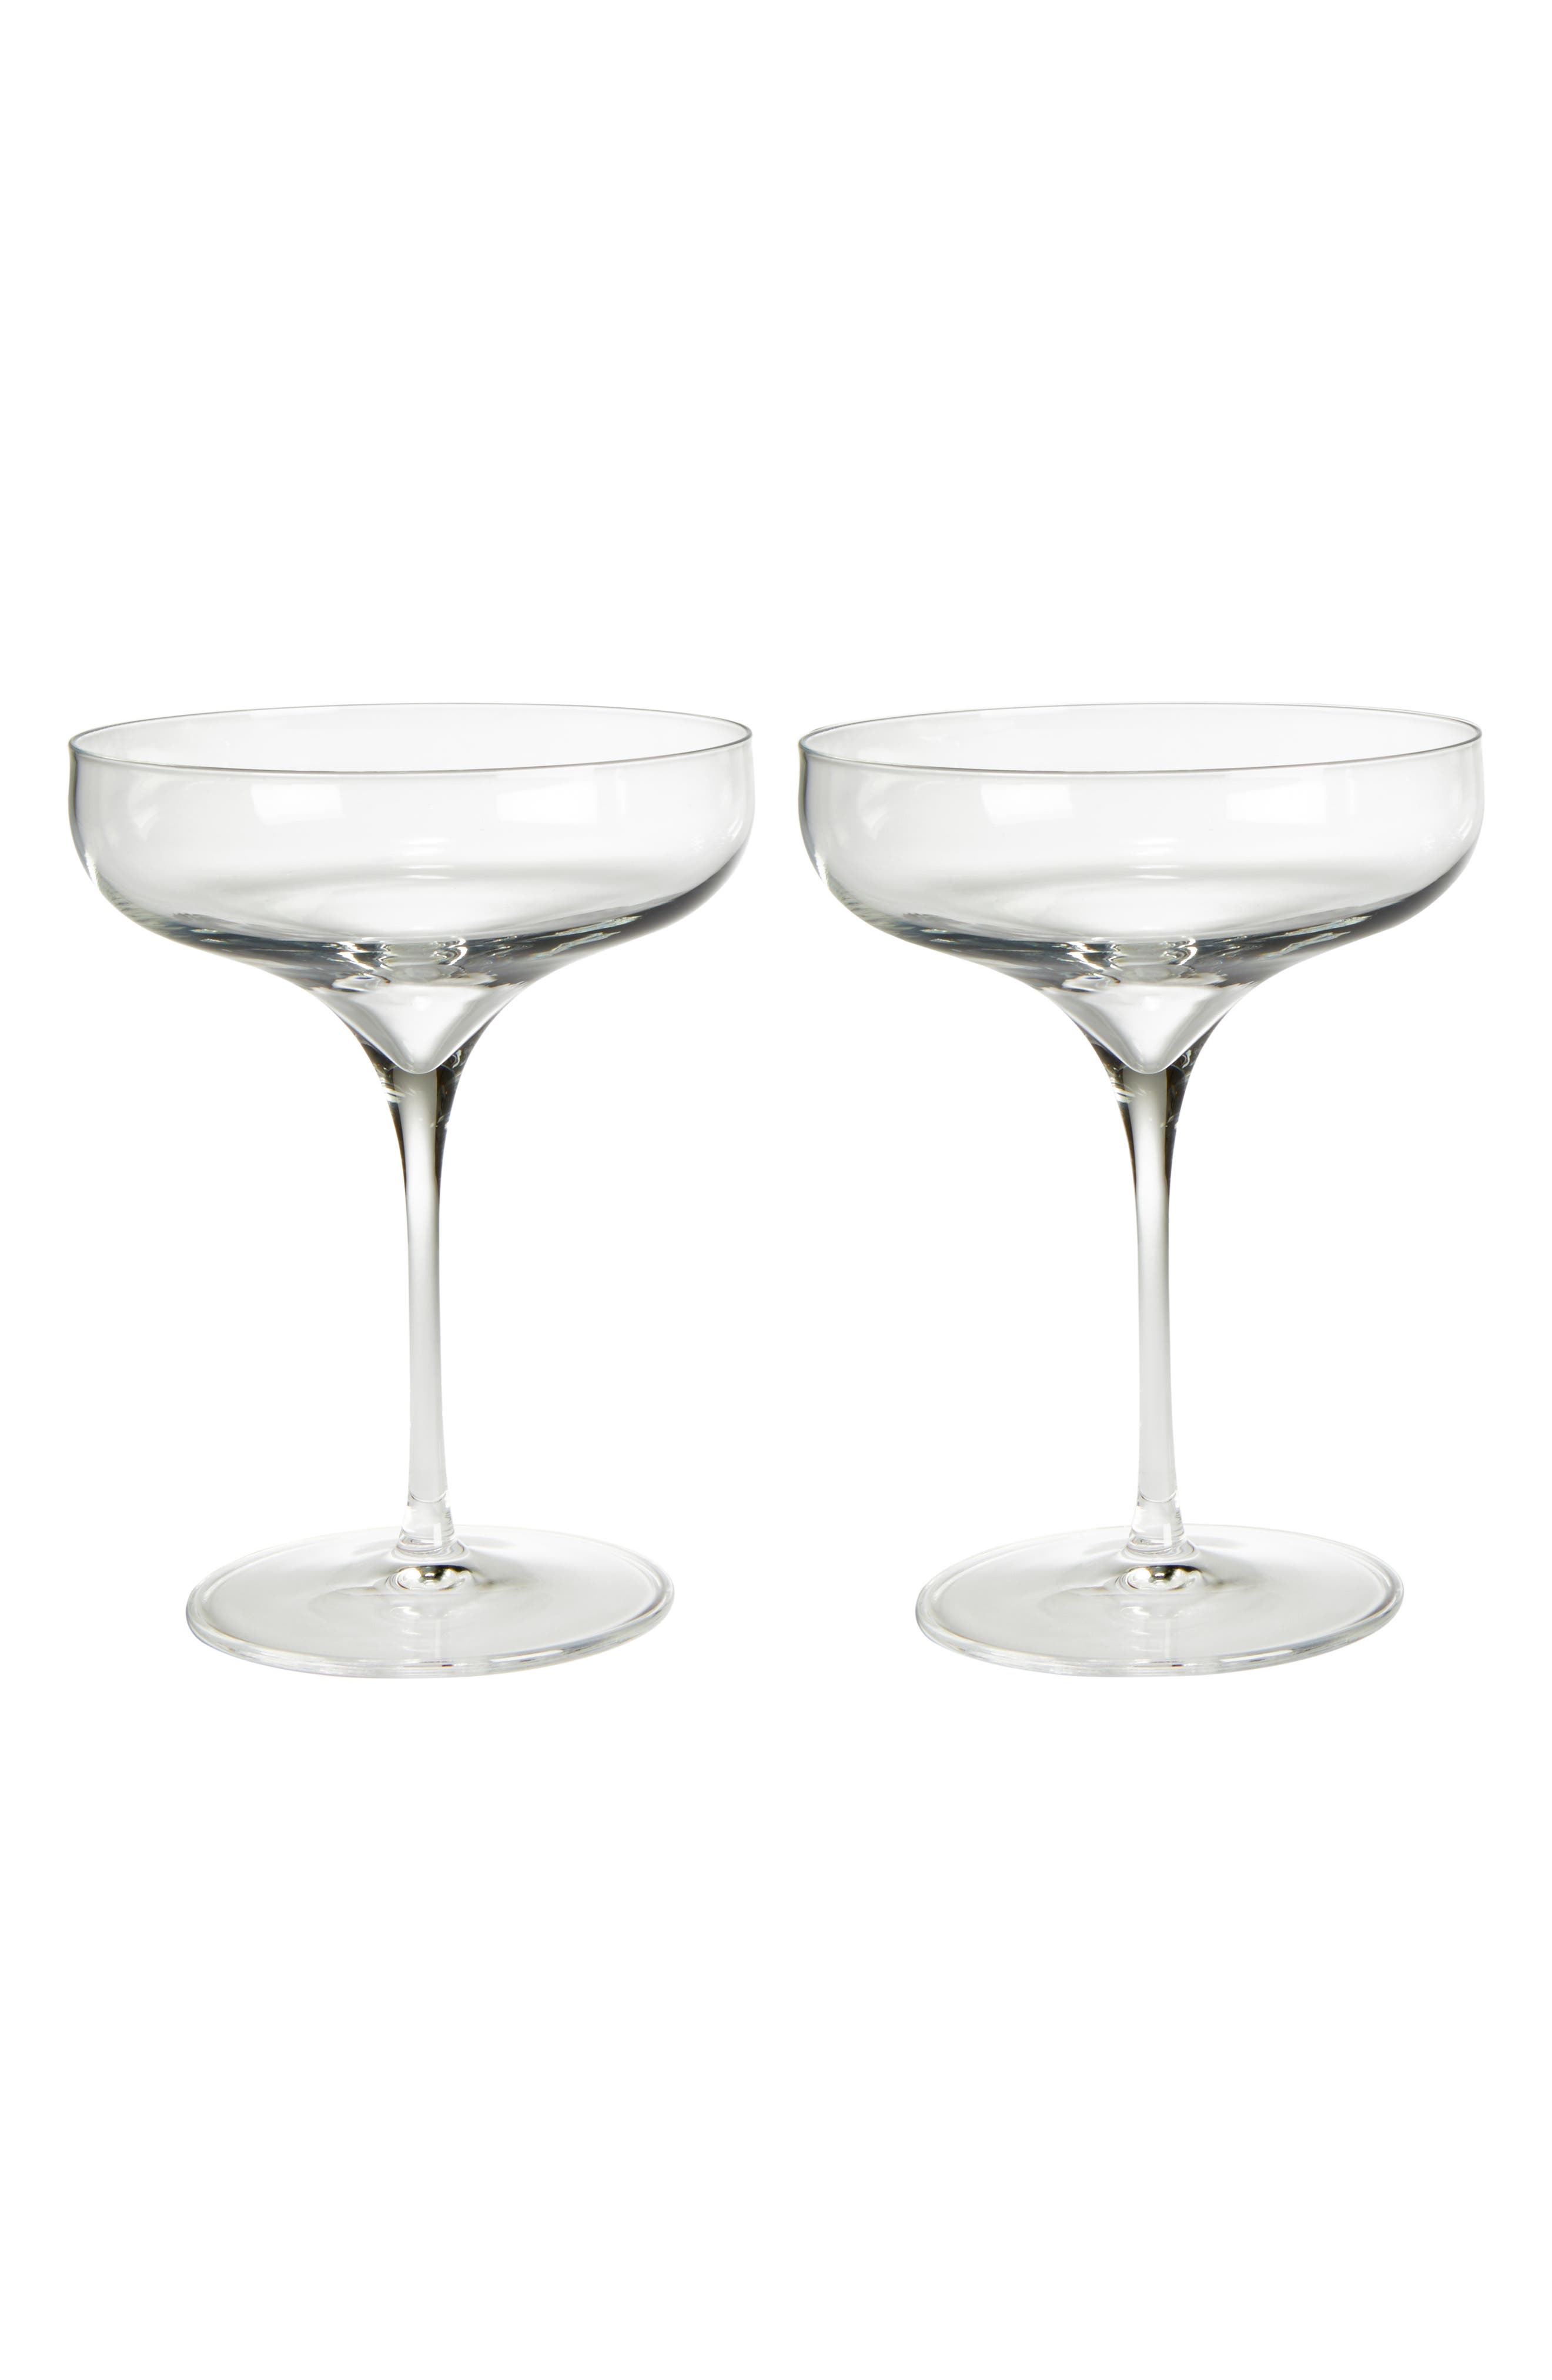 Alternate Image 1 Selected - Luigi Bormiolo Vinea Moscato/Spumante Set of 2 Coupe Glasses